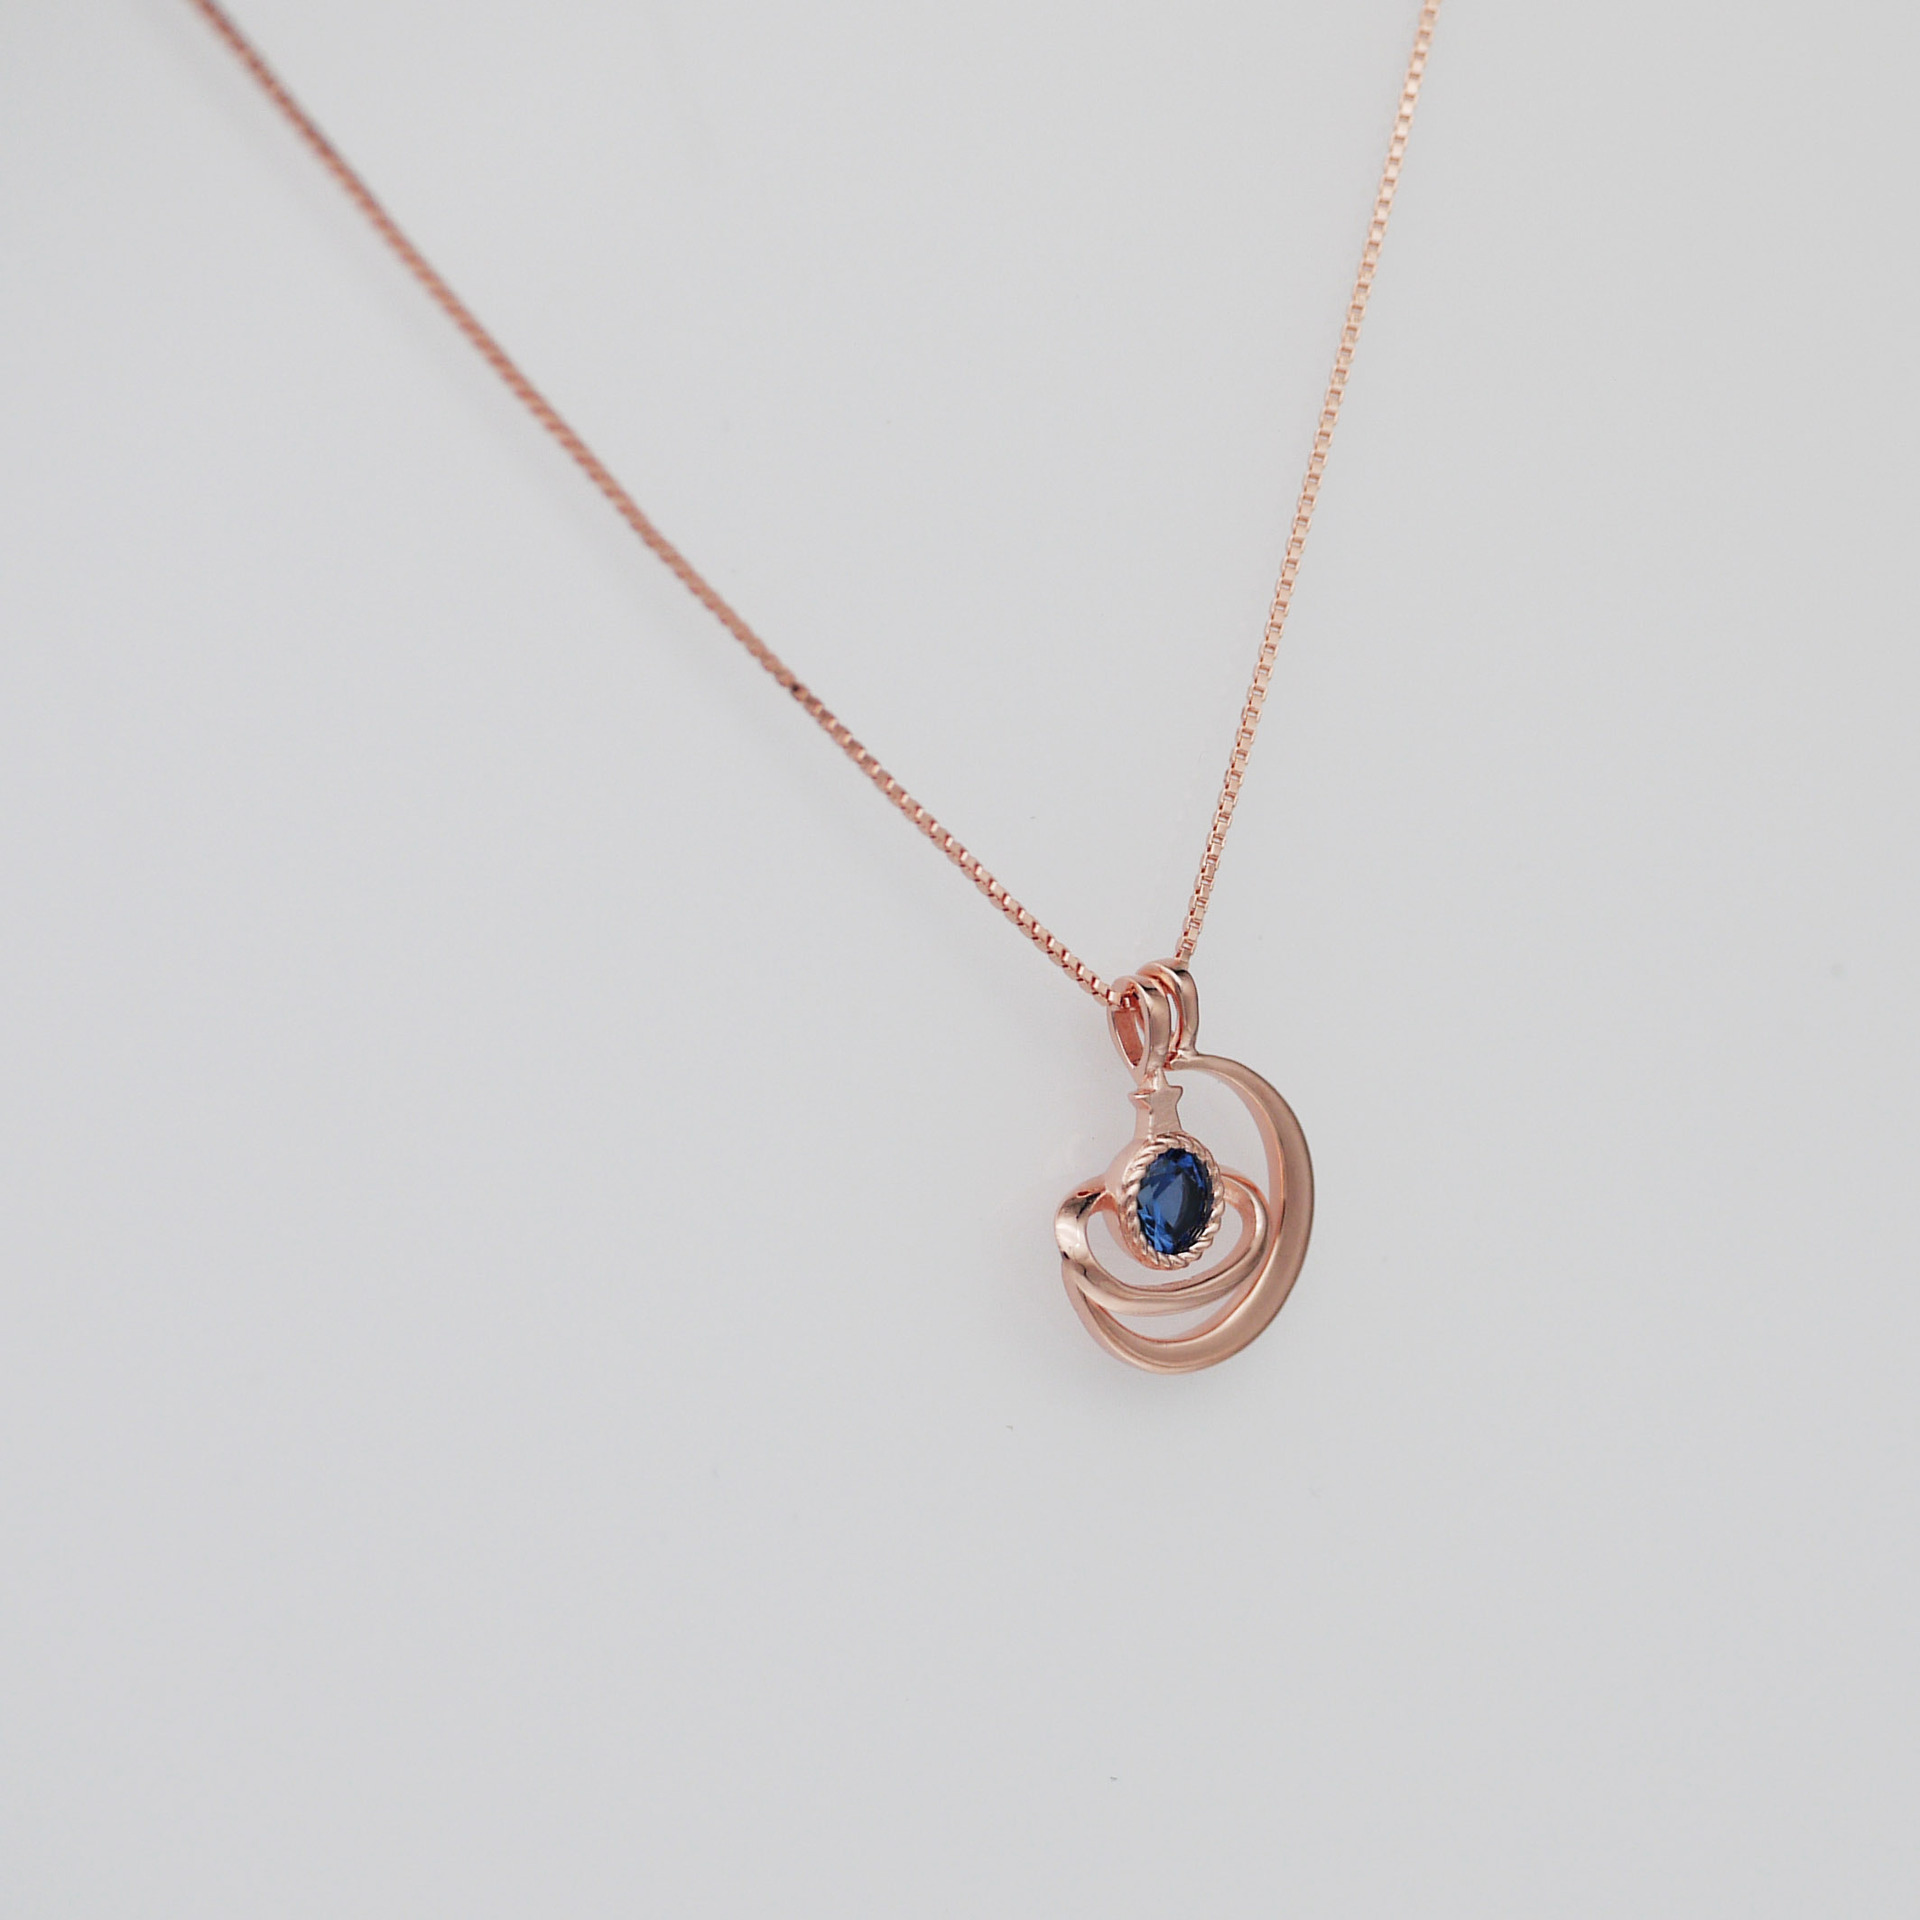 Jewelry European and American Red Book Celebrity Inspired S925 Sterling Silver Star Moon Universe Clavicle Chain Necklace